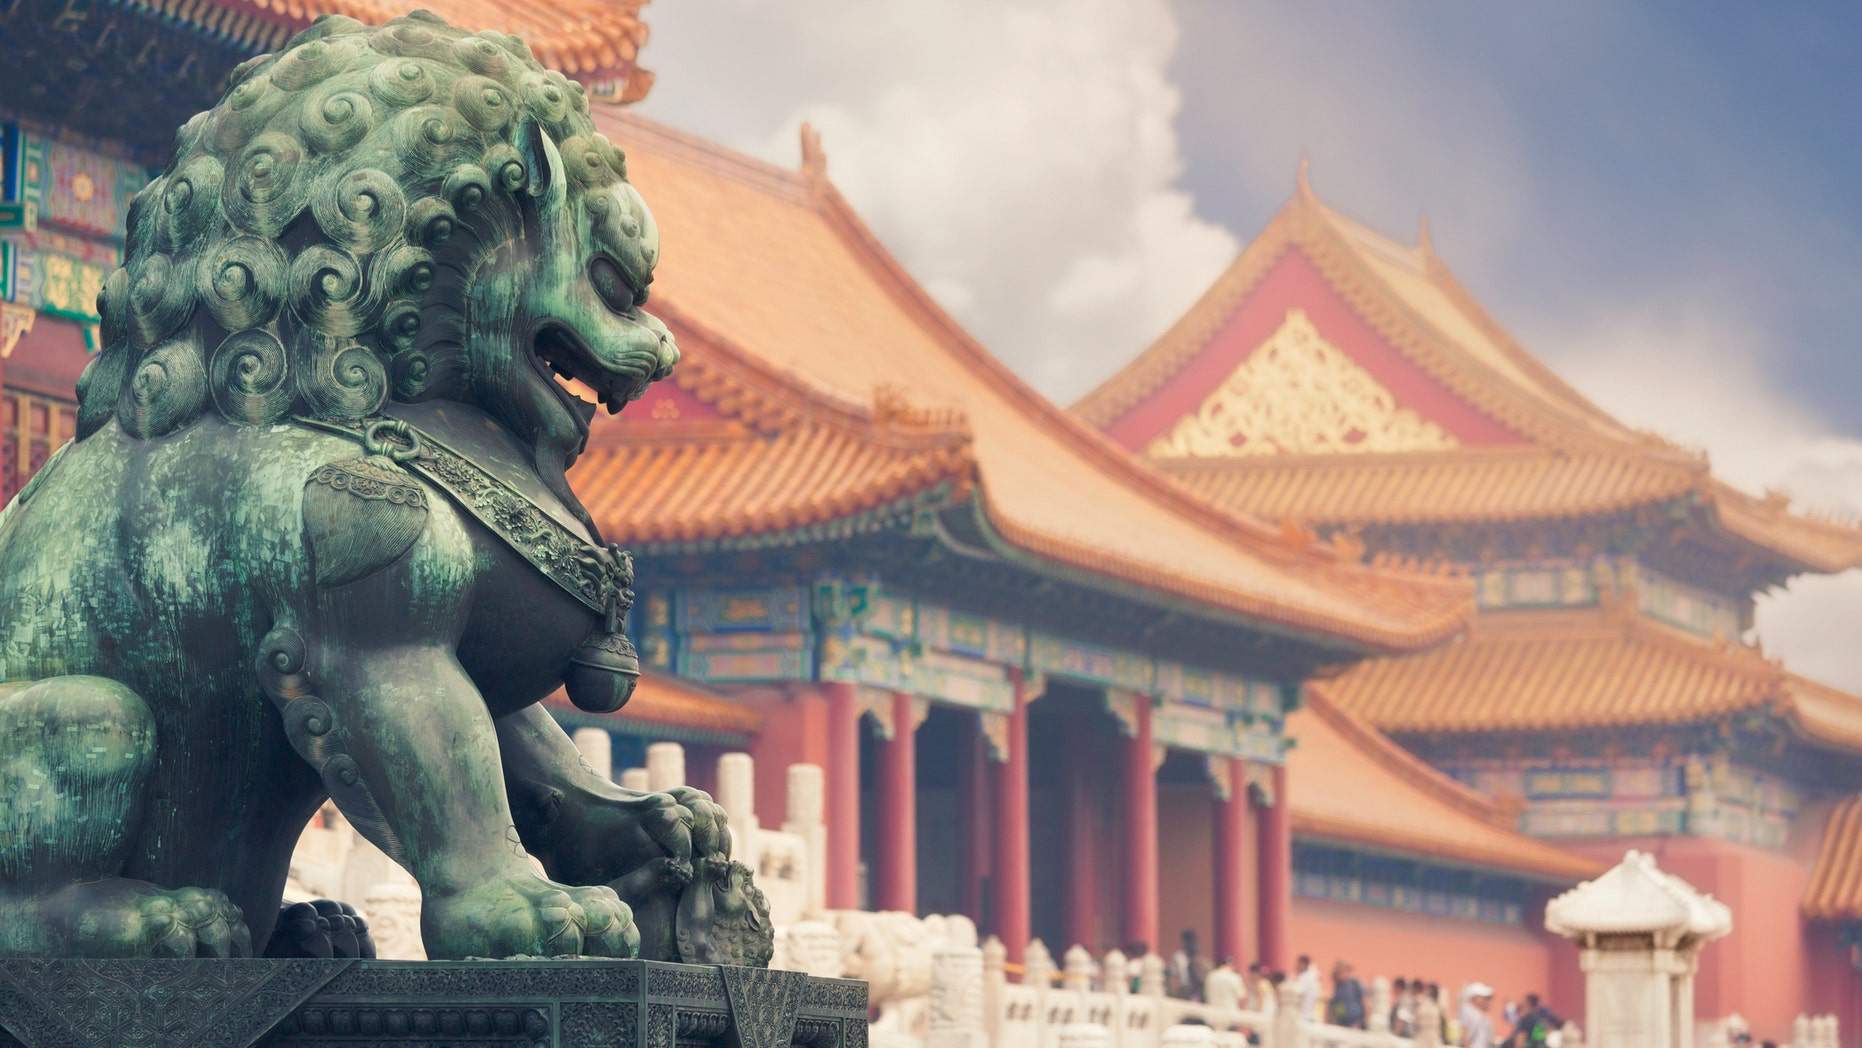 An old imperial lion sculpture in seen in front of historical Forbidden City buildings.